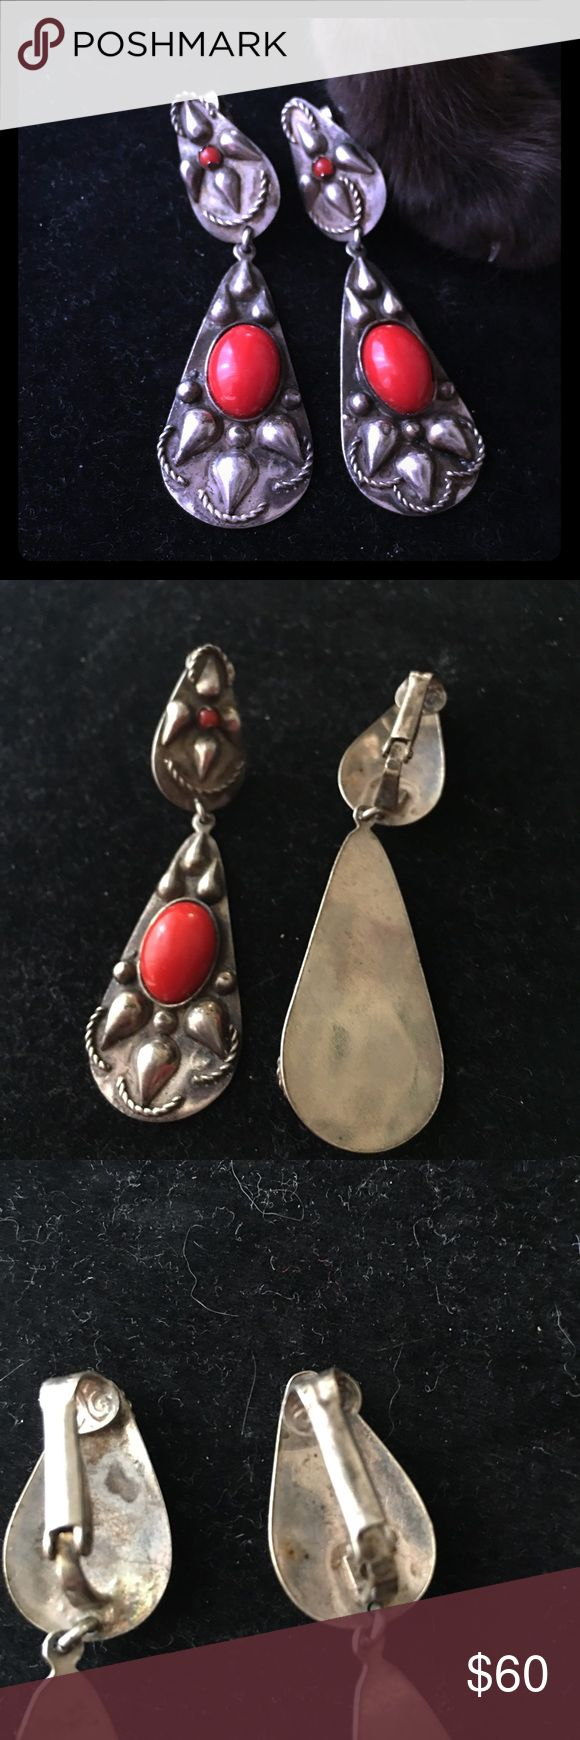 VINTAGE DEAD PAWN CORAL AND SILVER EARRINGS These are Dead Pawn coral and silver earrings - they are clip on - I left the patina most of it on - but they can be cleaned and they are the beautiful white silver vintage Dead Pawn  Jewelry Earrings